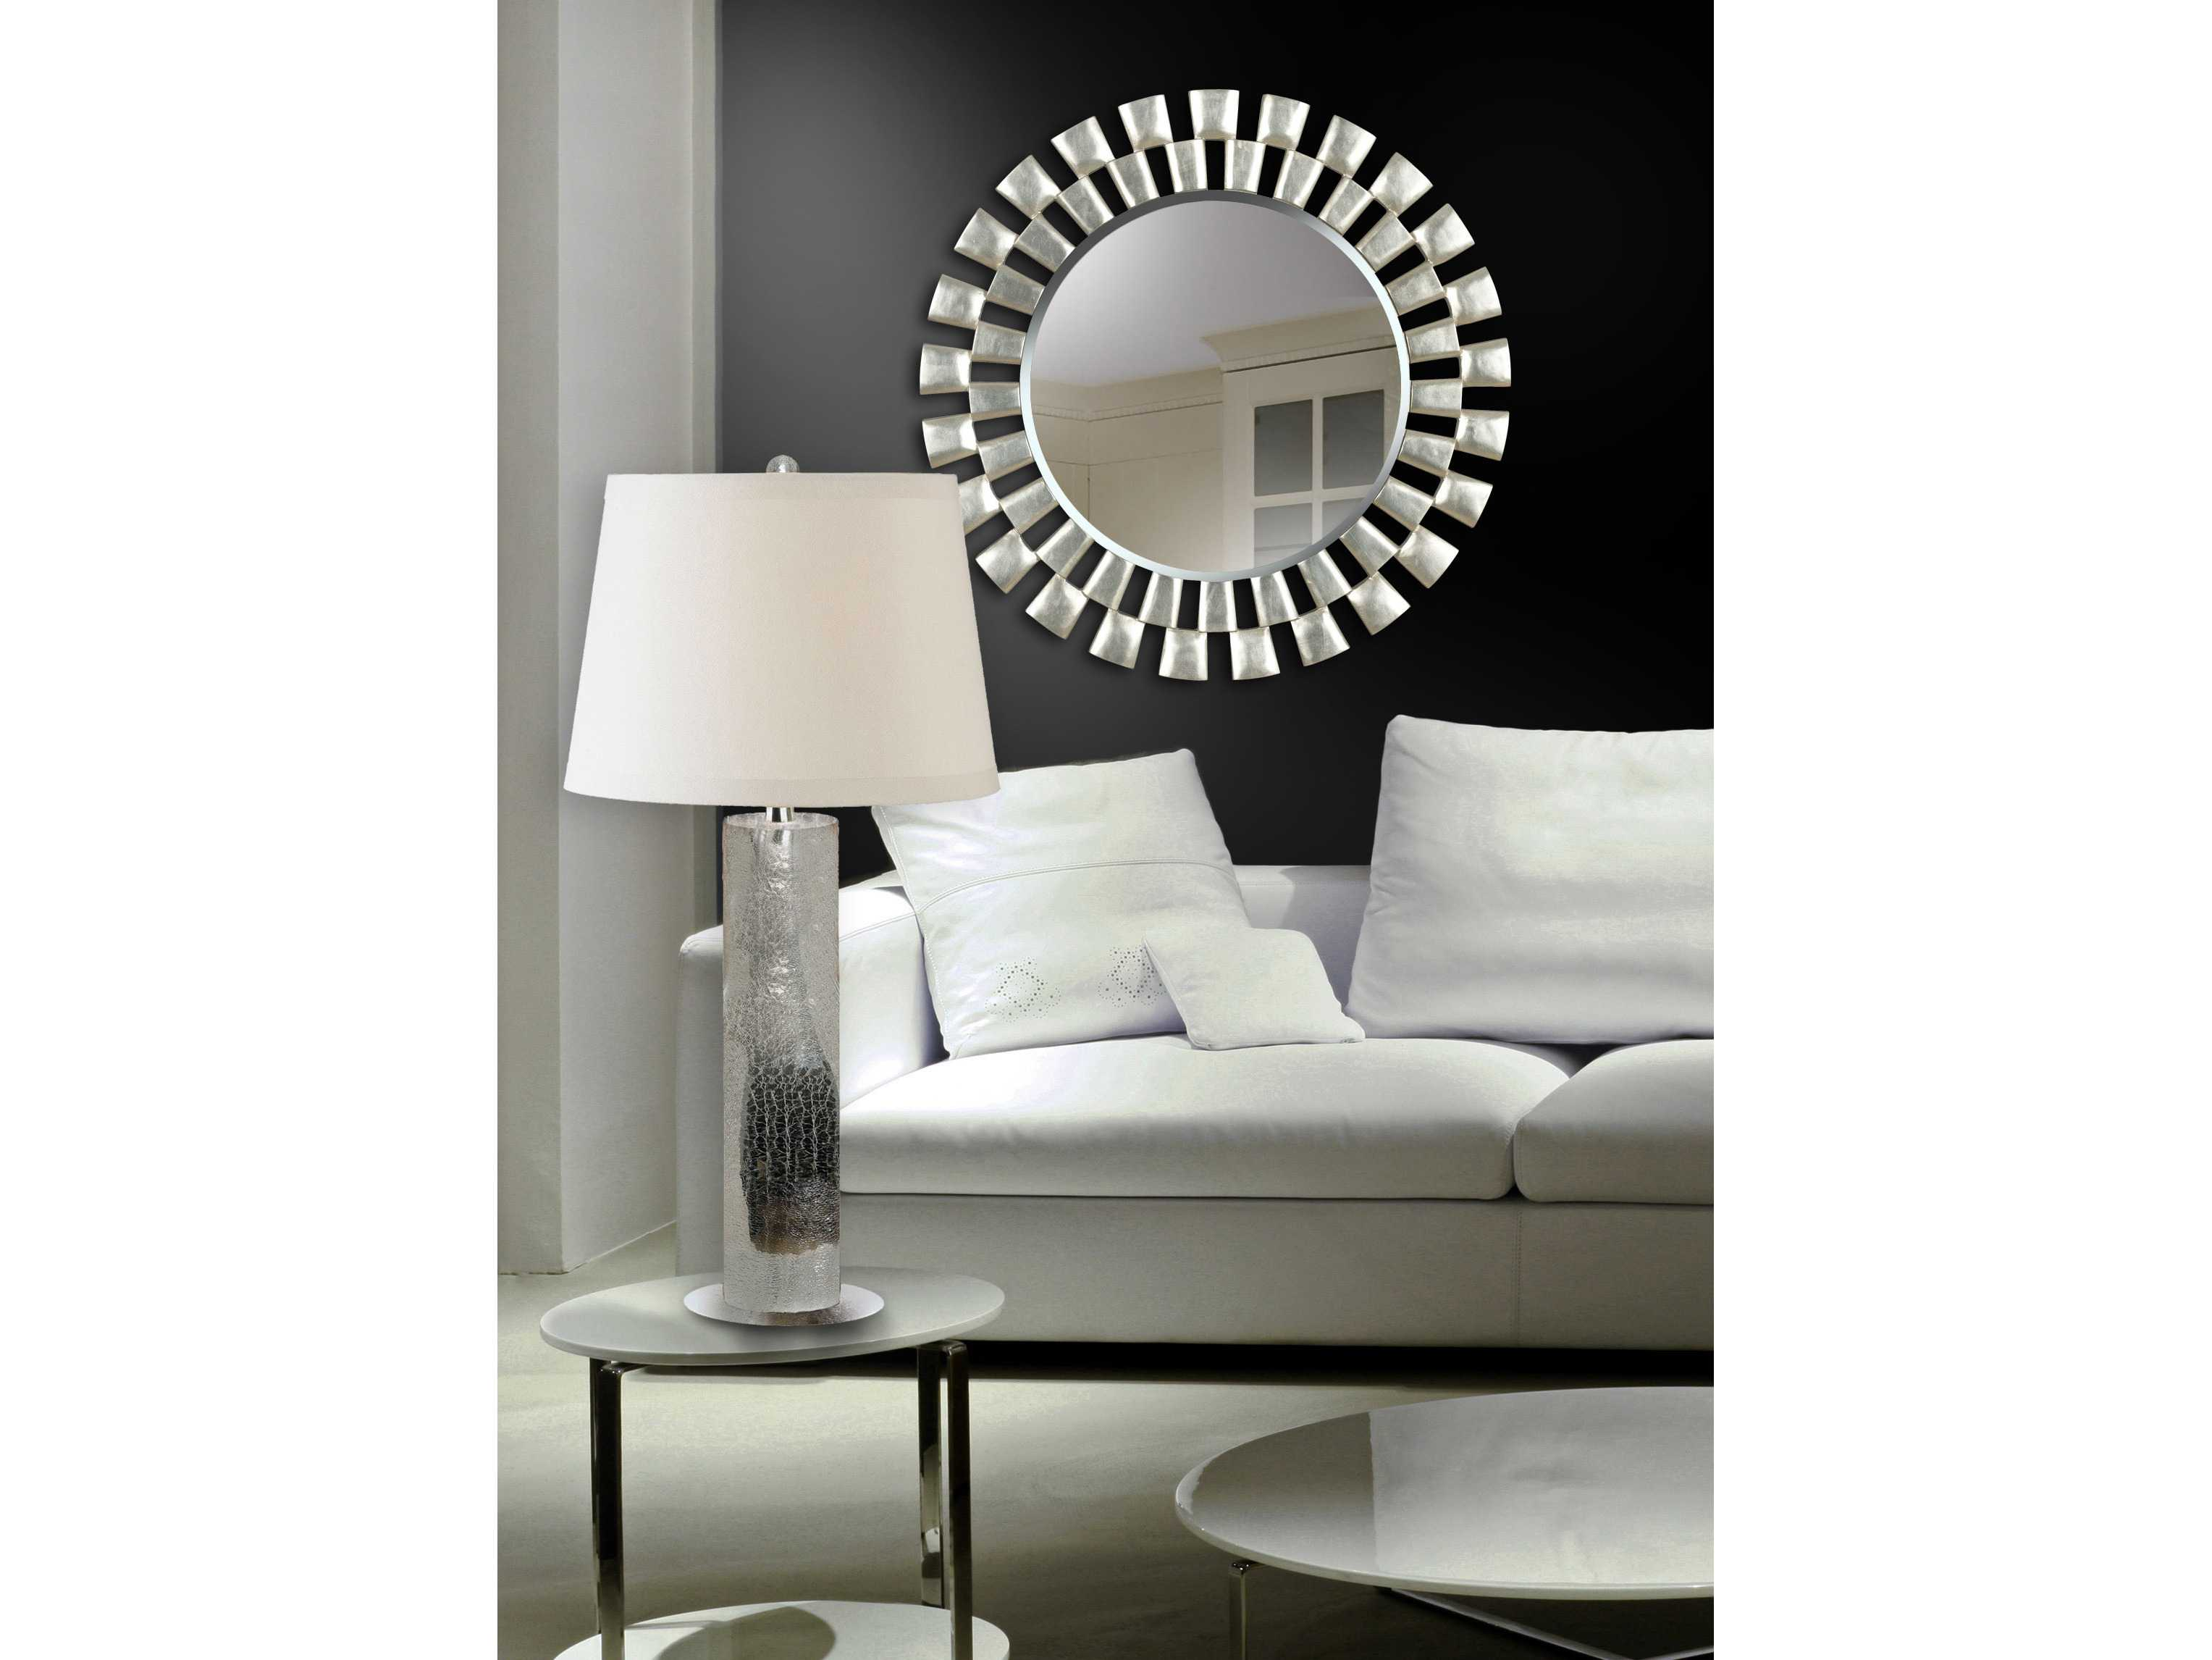 Kenroy home gilbert 36 round silver wall mirror 60019 for Round silver wall mirror